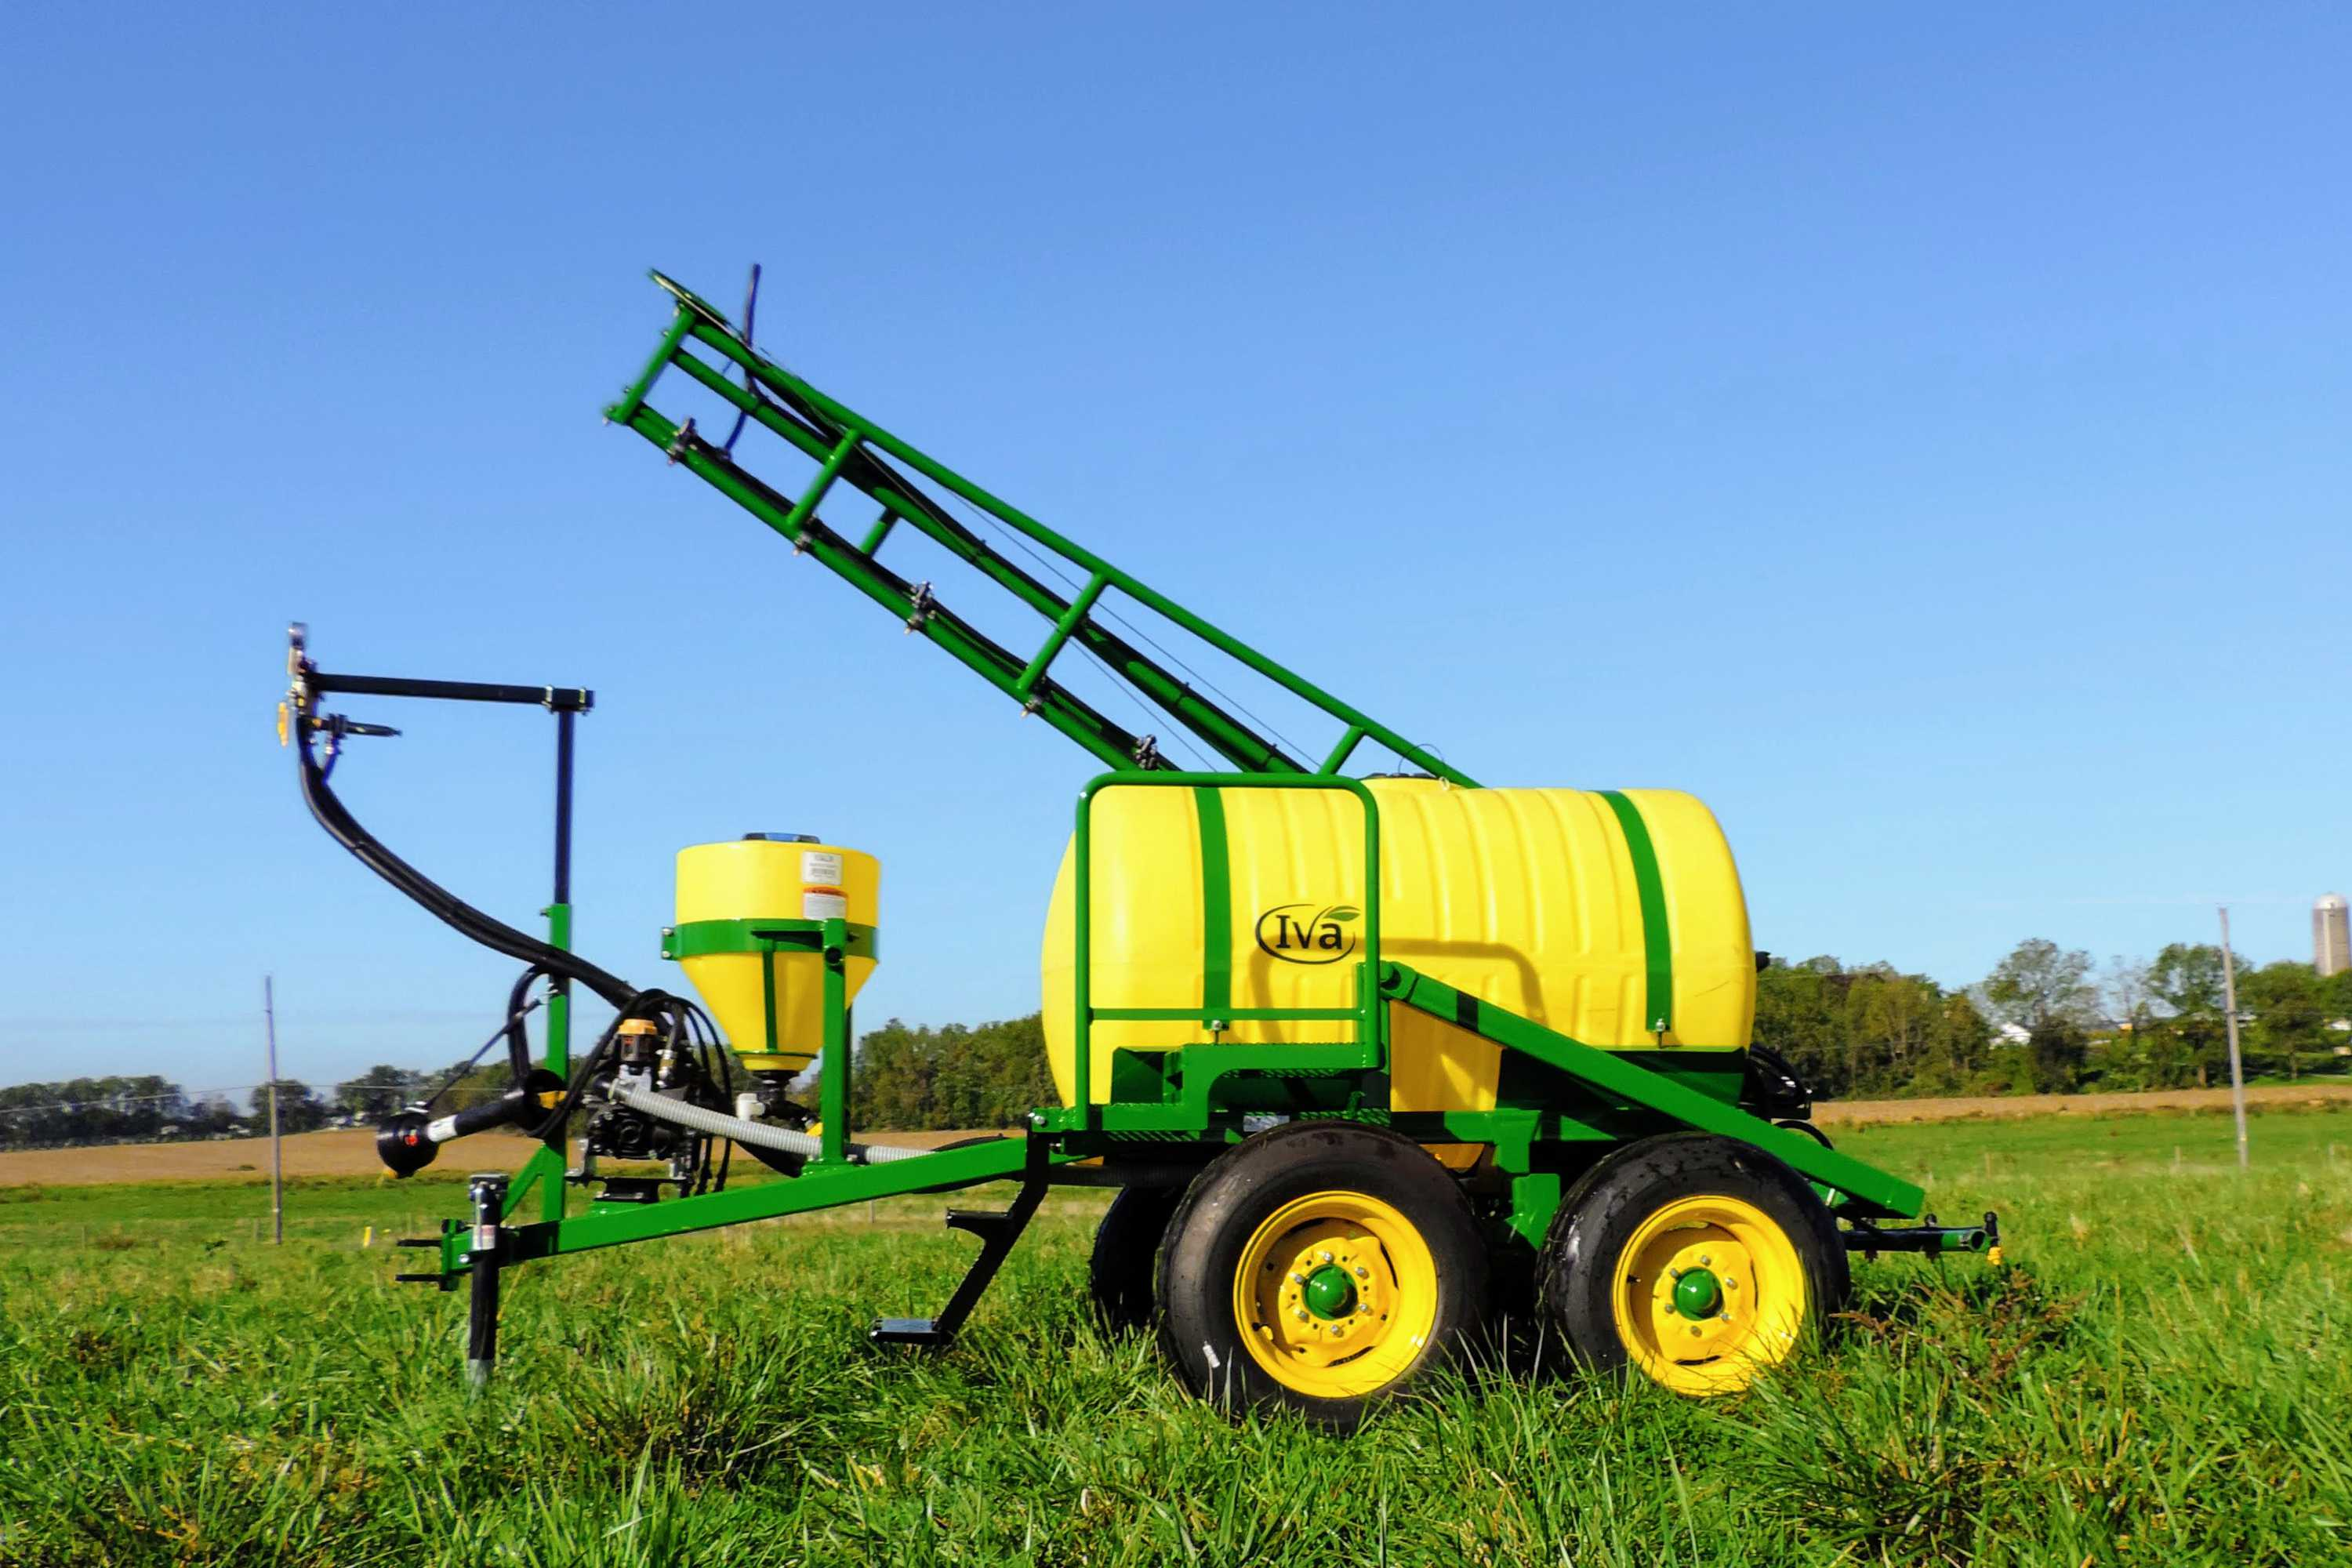 300 gallon trailer produce sprayer with 25' single sided boom and tandem axle